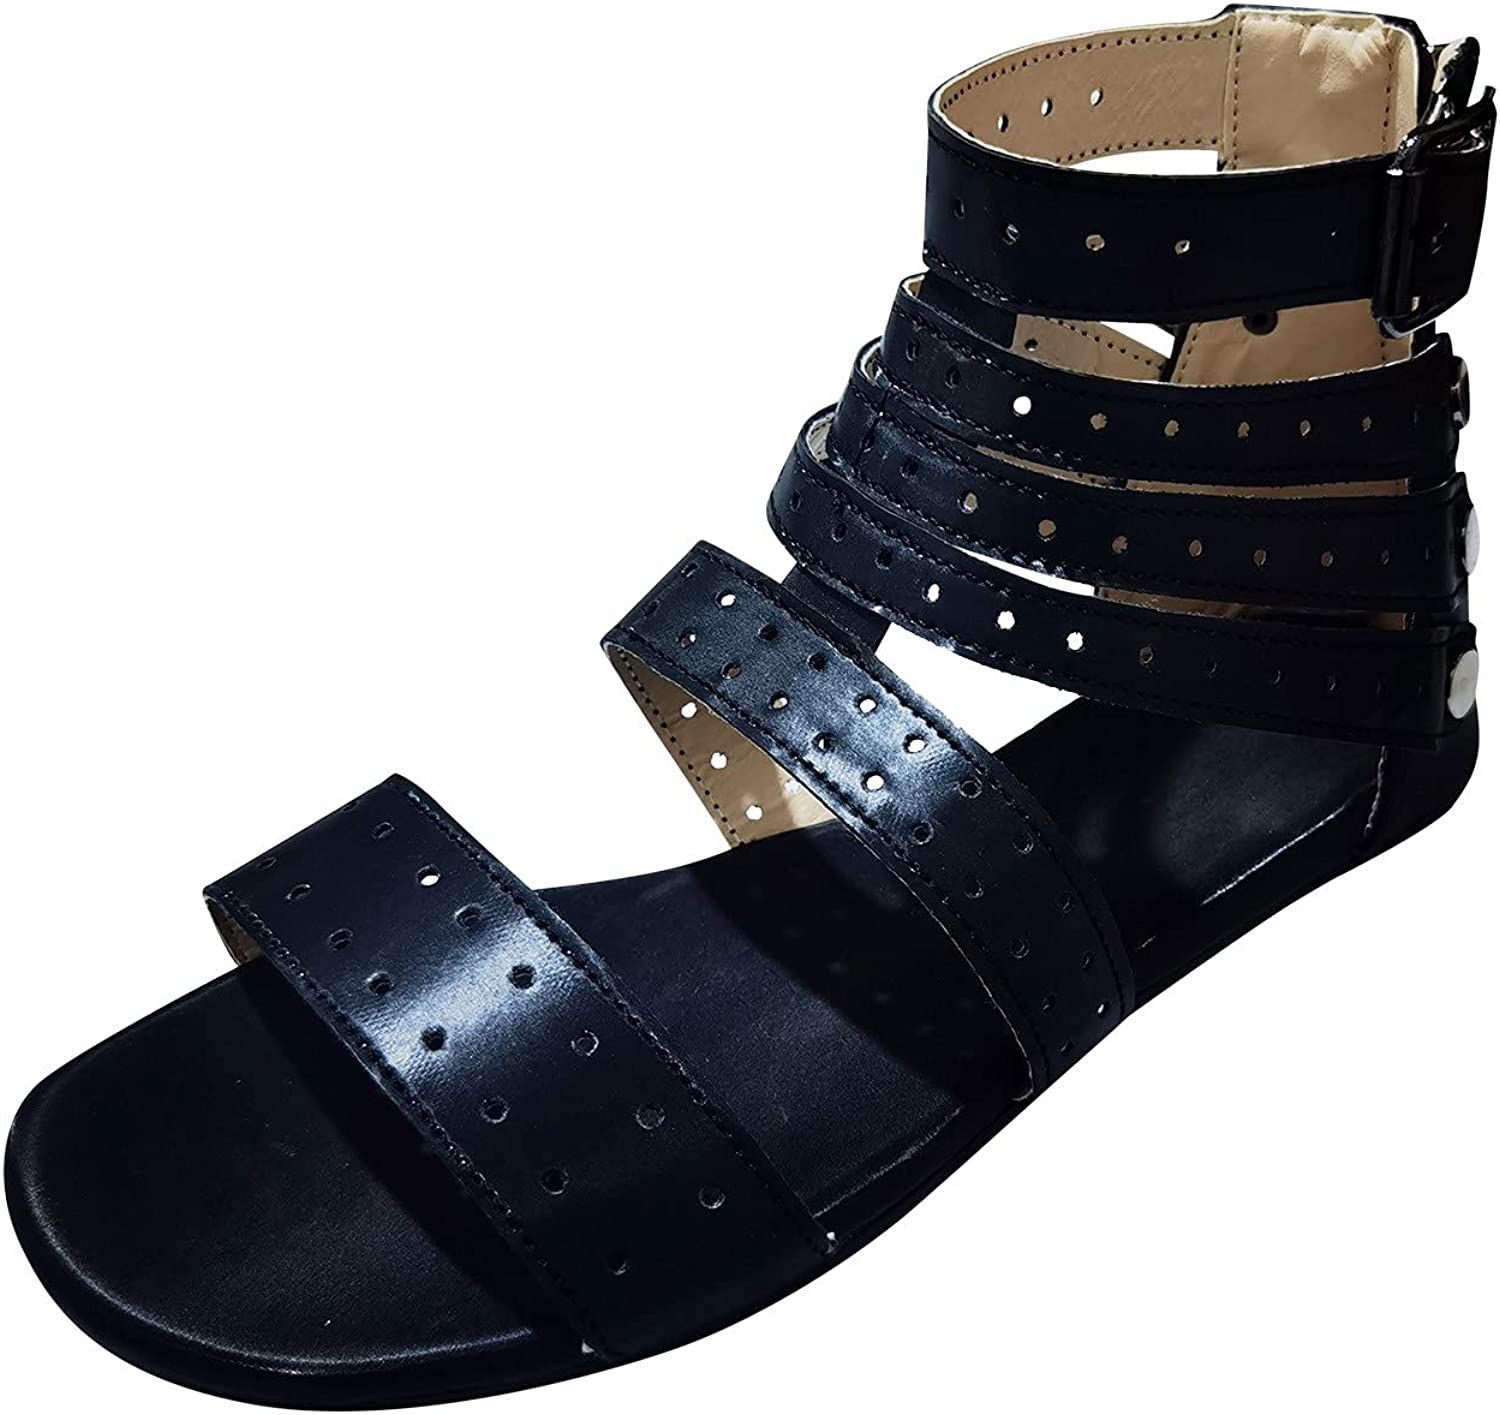 USYFAKGH Dress Sandals For Women Fashion Women's Casual Shoes Br